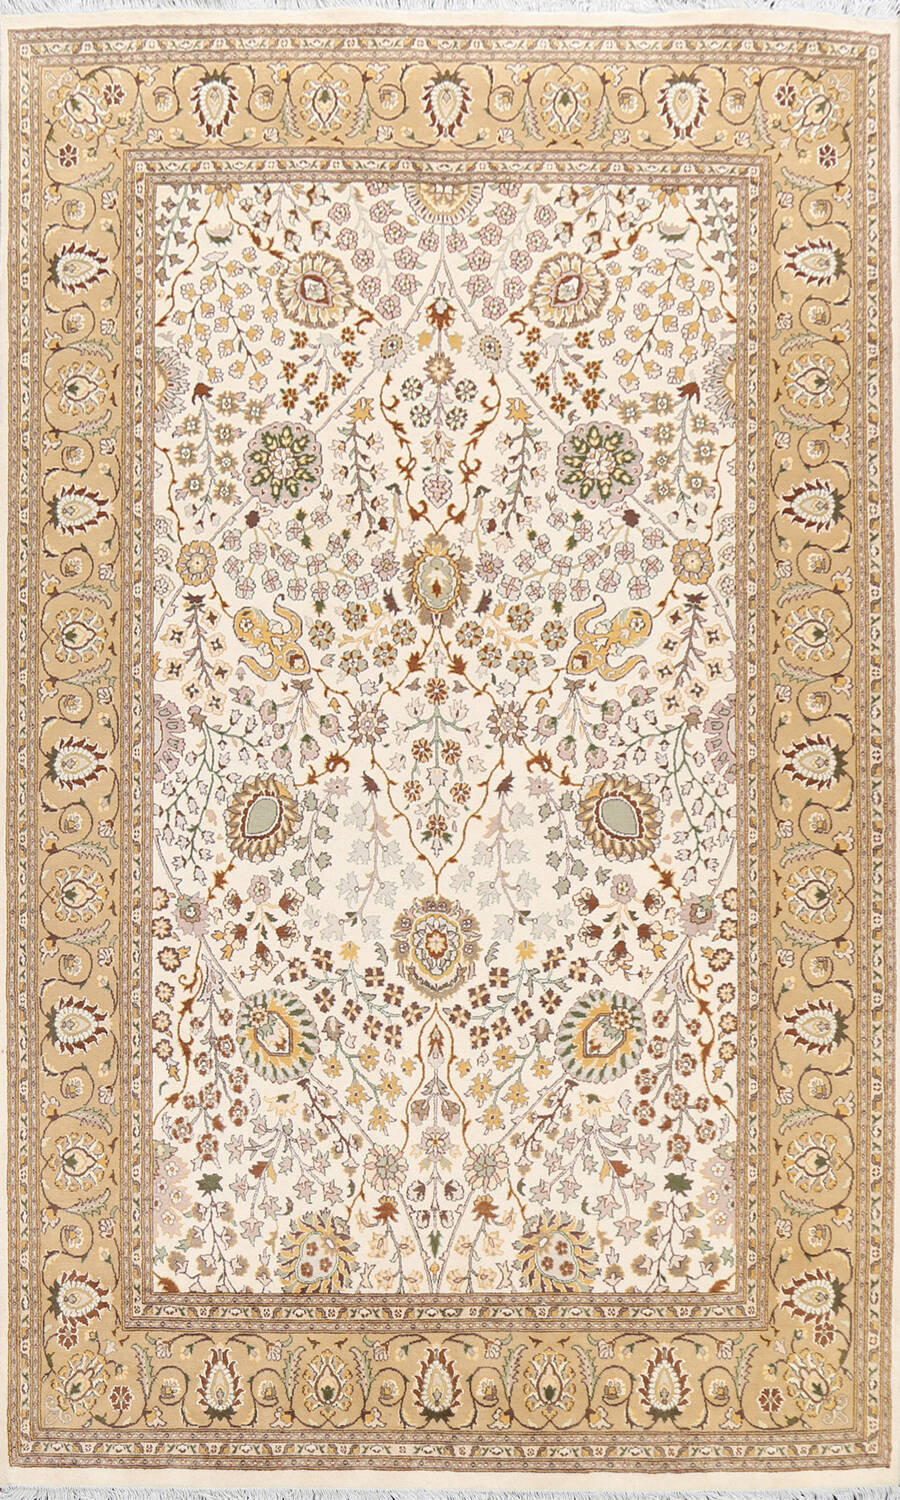 Vegetable Dye Floral Tabriz Oriental Area Rug 6x9 image 1